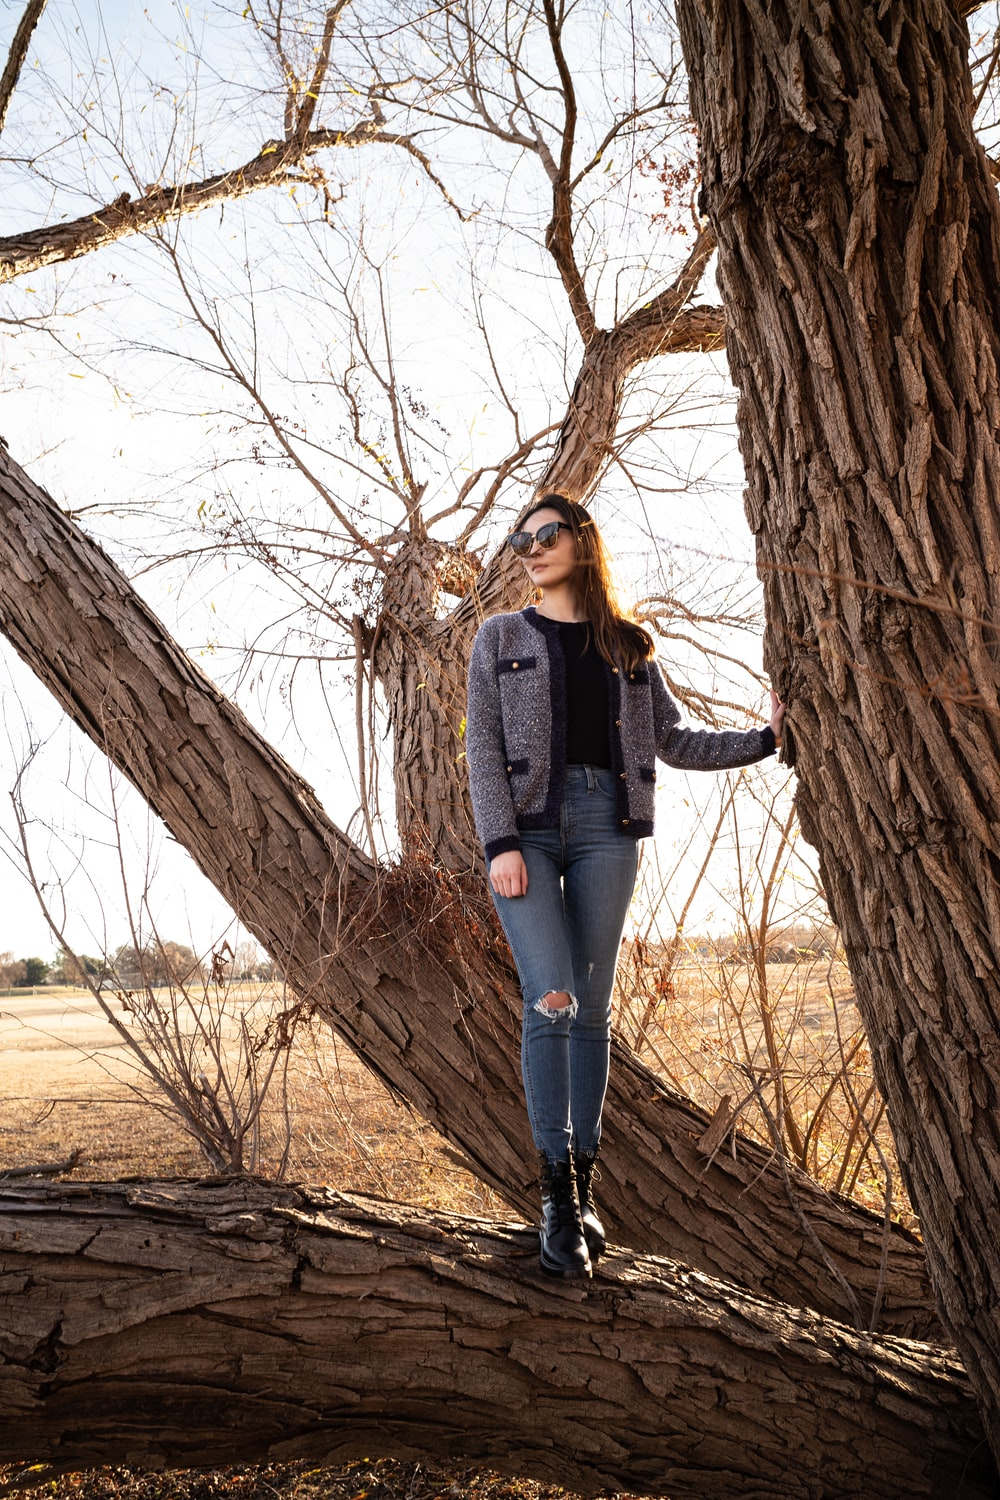 woman standing on tree branch during day